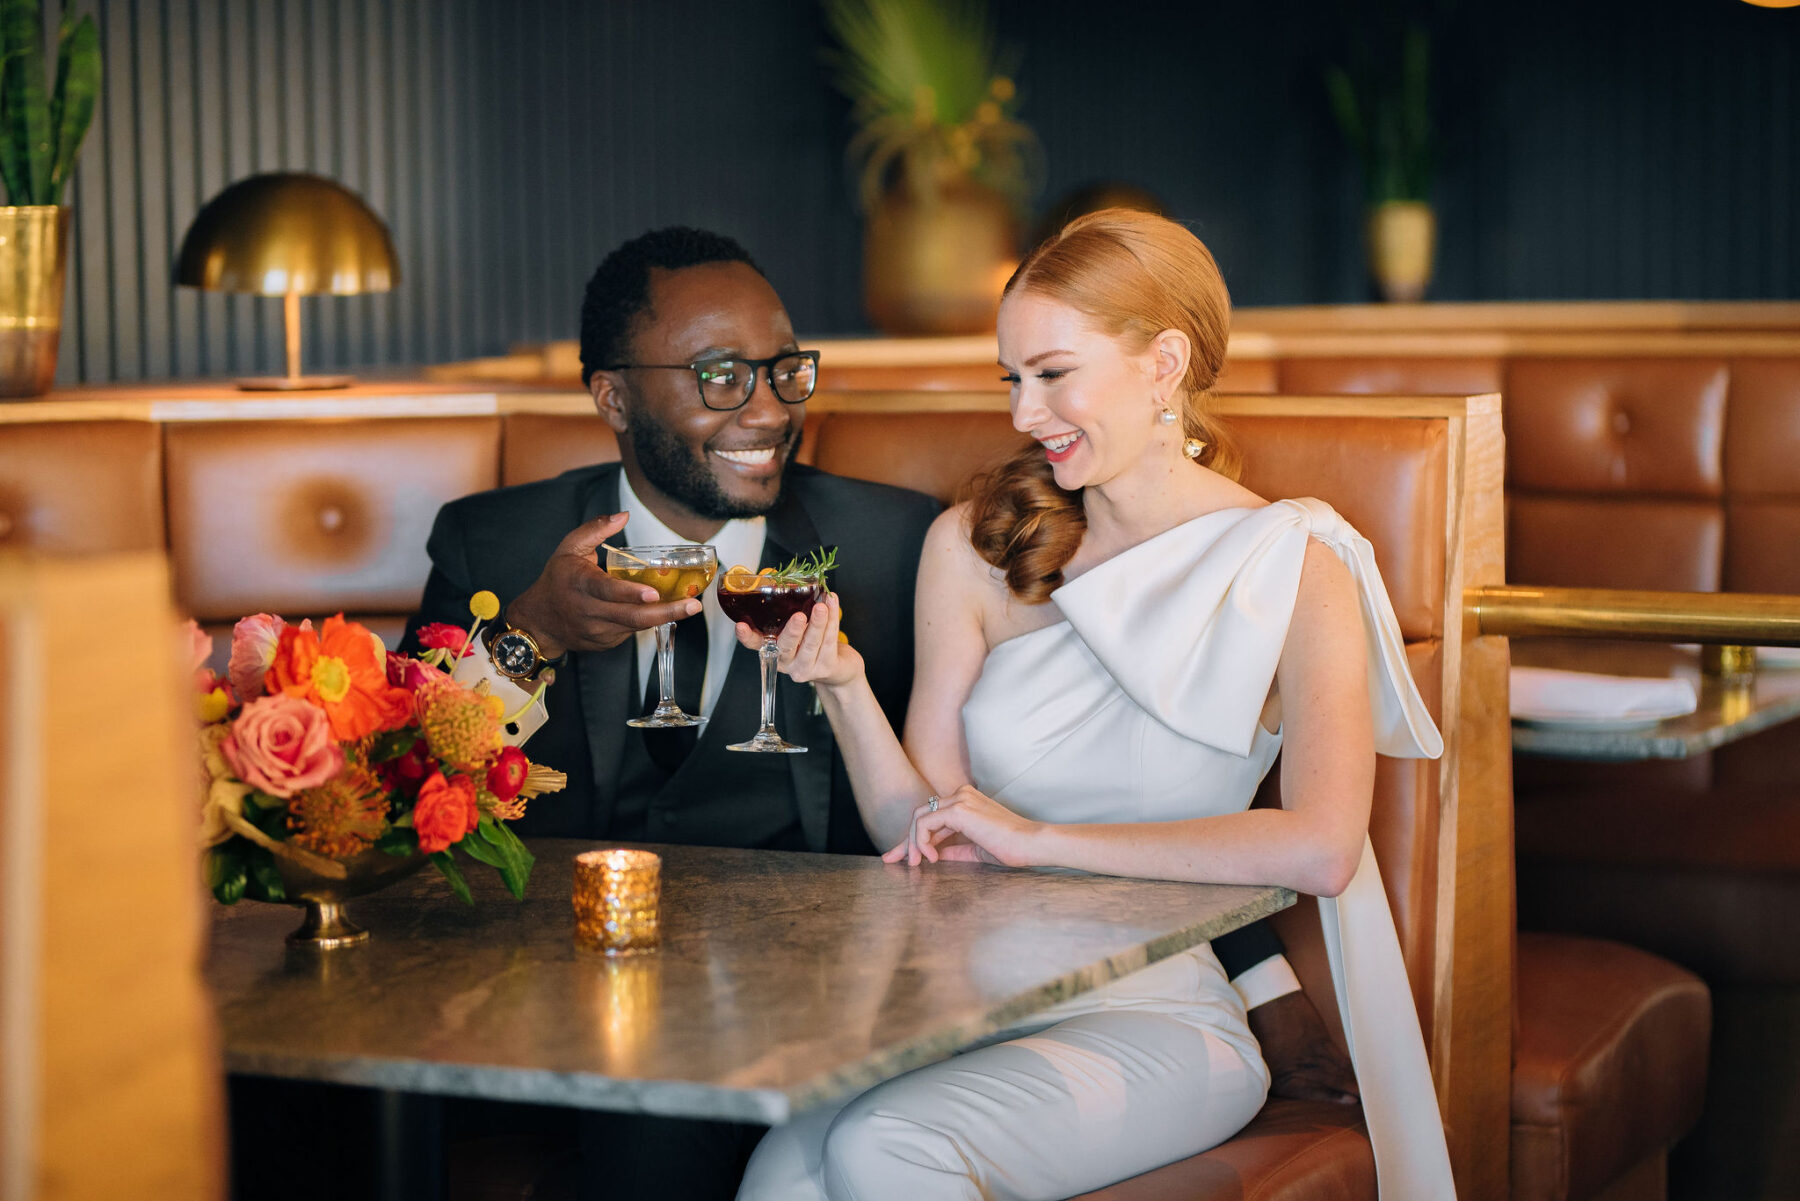 Retro Spring Styled Shoot at Fairlane Hotel | Nashville Bride Guide